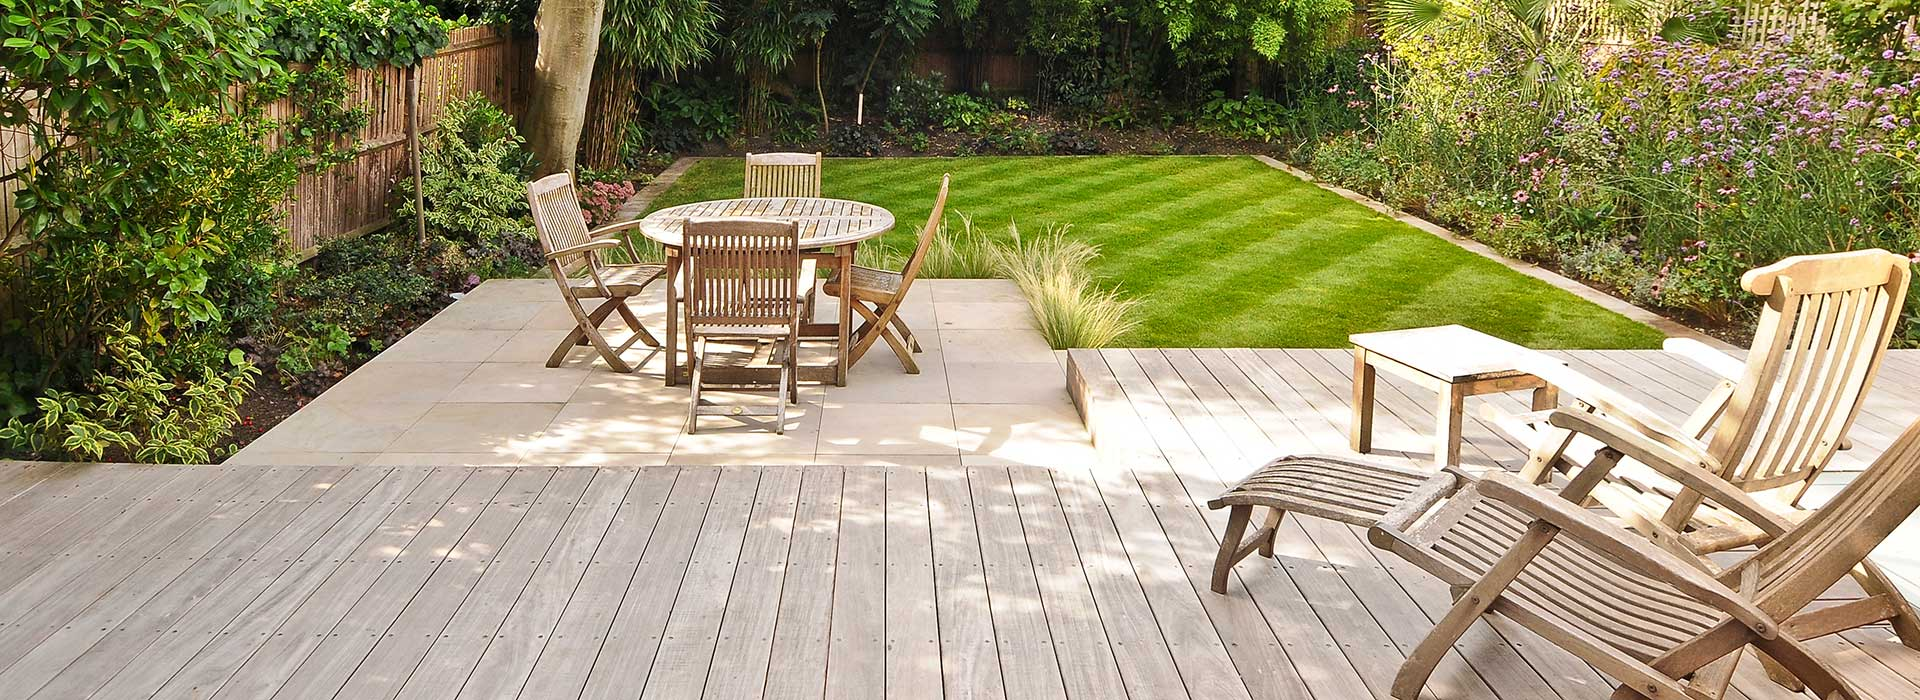 Kate Eyre Landscaping Garden Design London